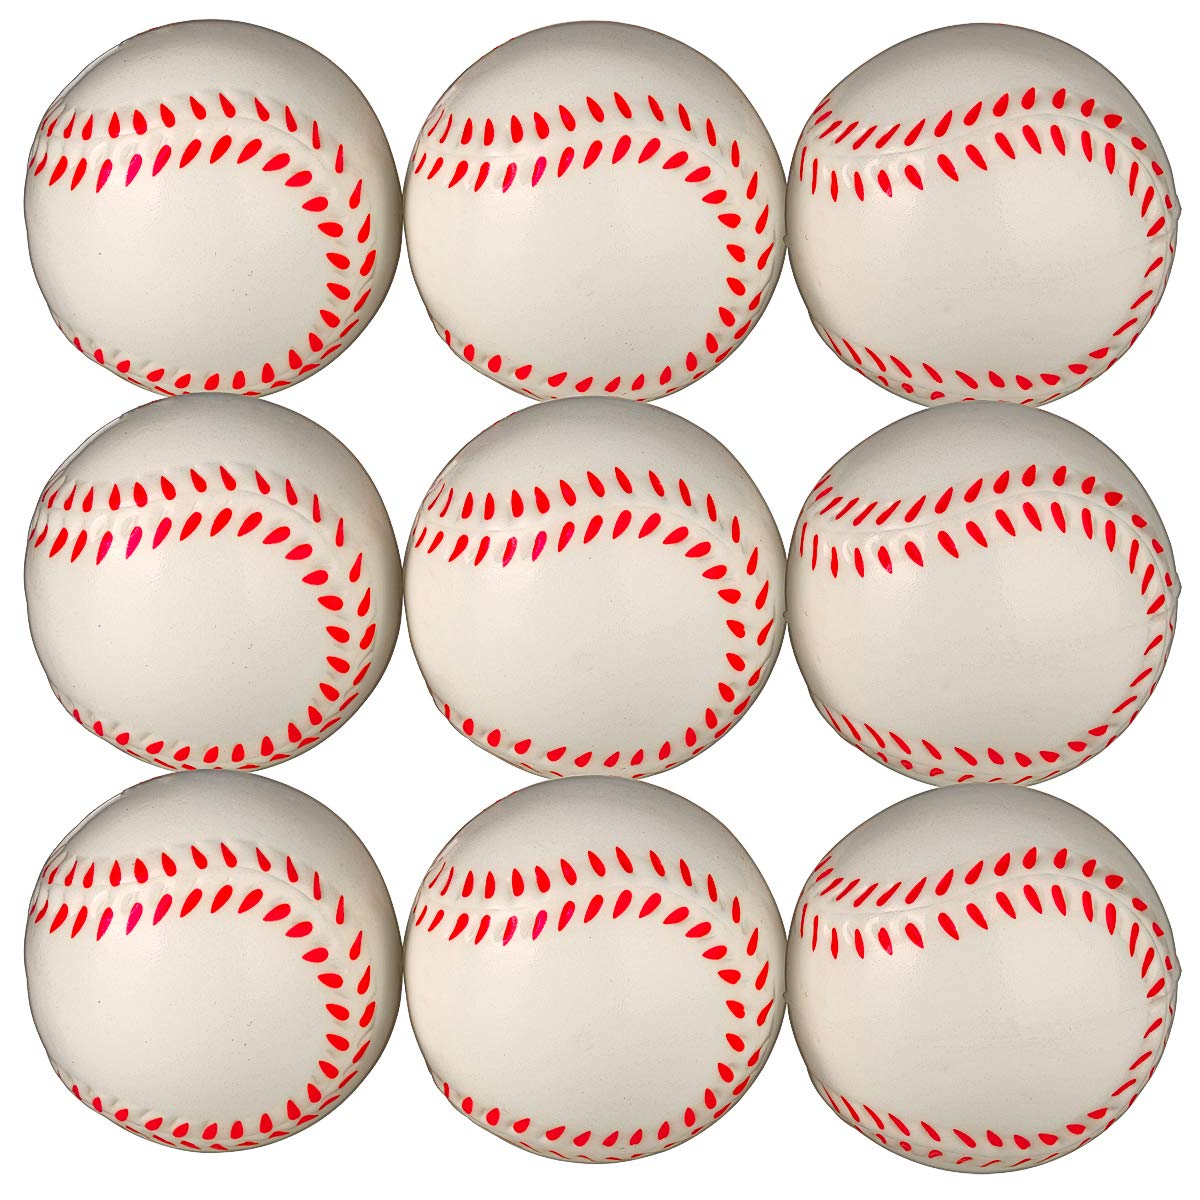 Baseball Sports Themed 2.5-Inch Foam Squeeze Balls for Stress Relief, Relaxable Realistic Baseball Sport Balls - Bulk 1 Dozen by Neliblu (Image #6)